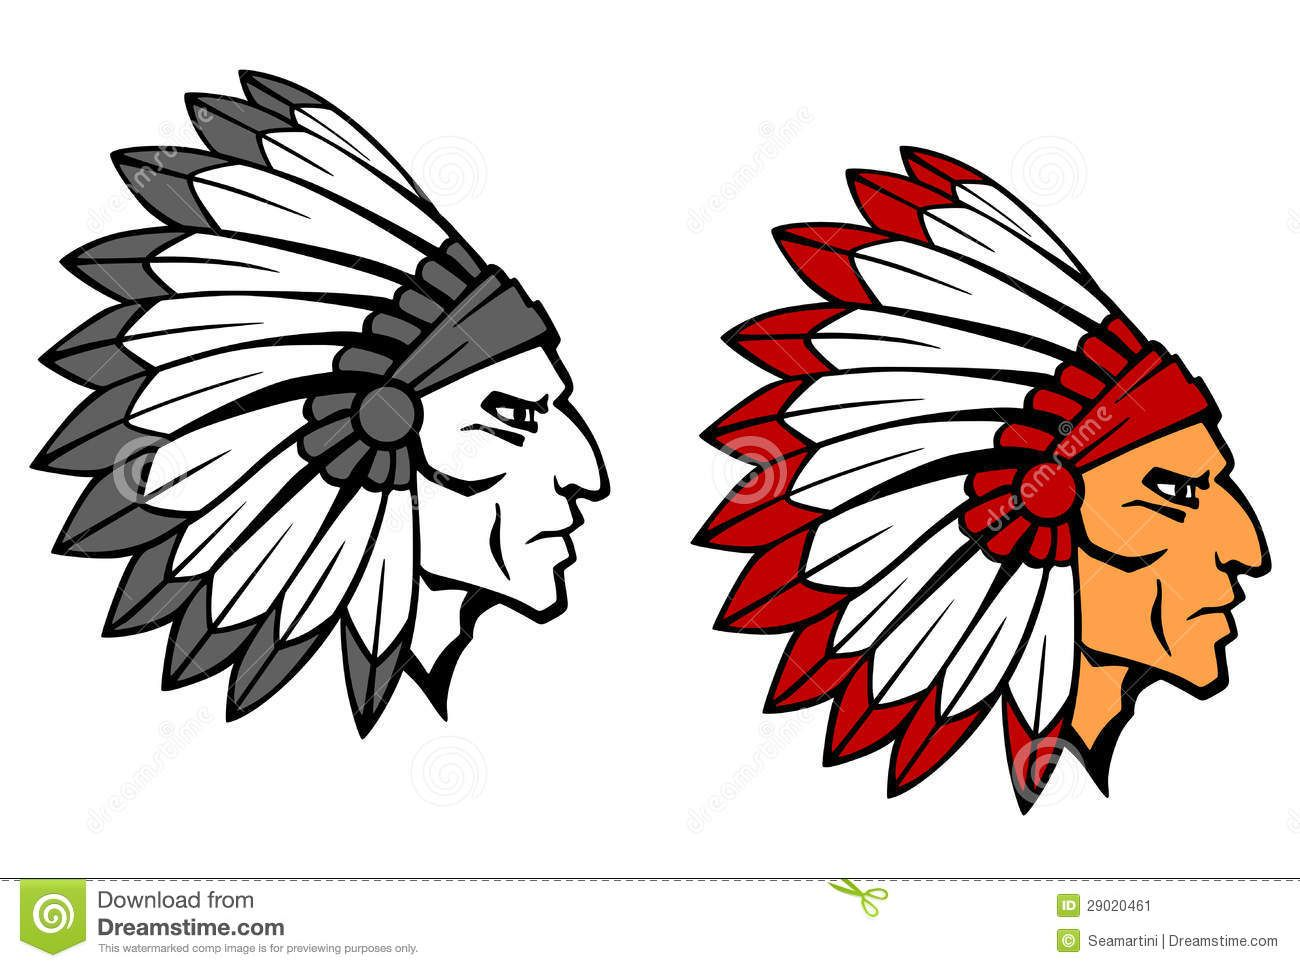 Arrowhead clipart warrior.  best indian mascots